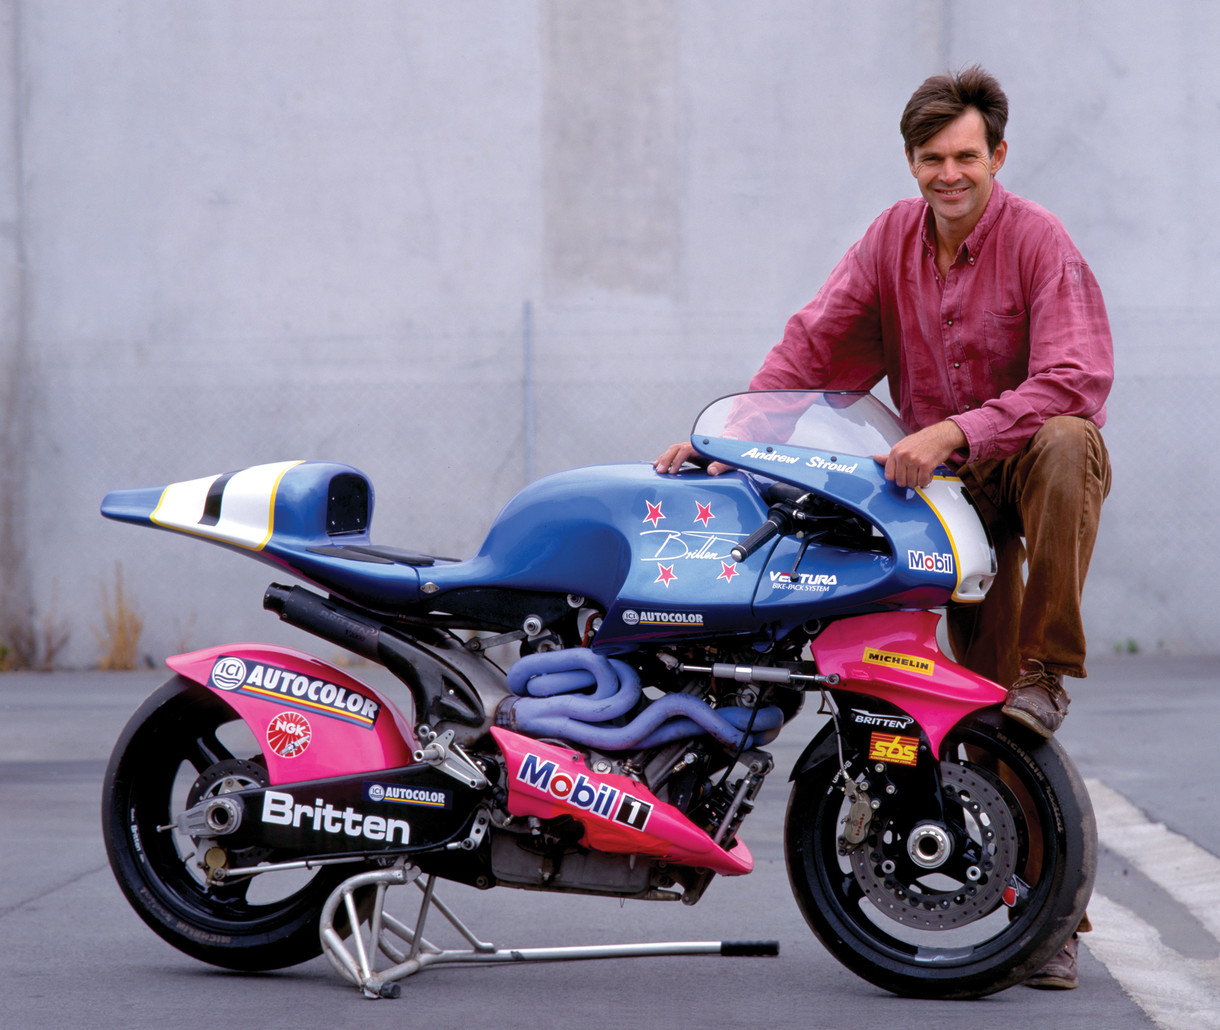 World-famous Britten superbike comes to the Gallery